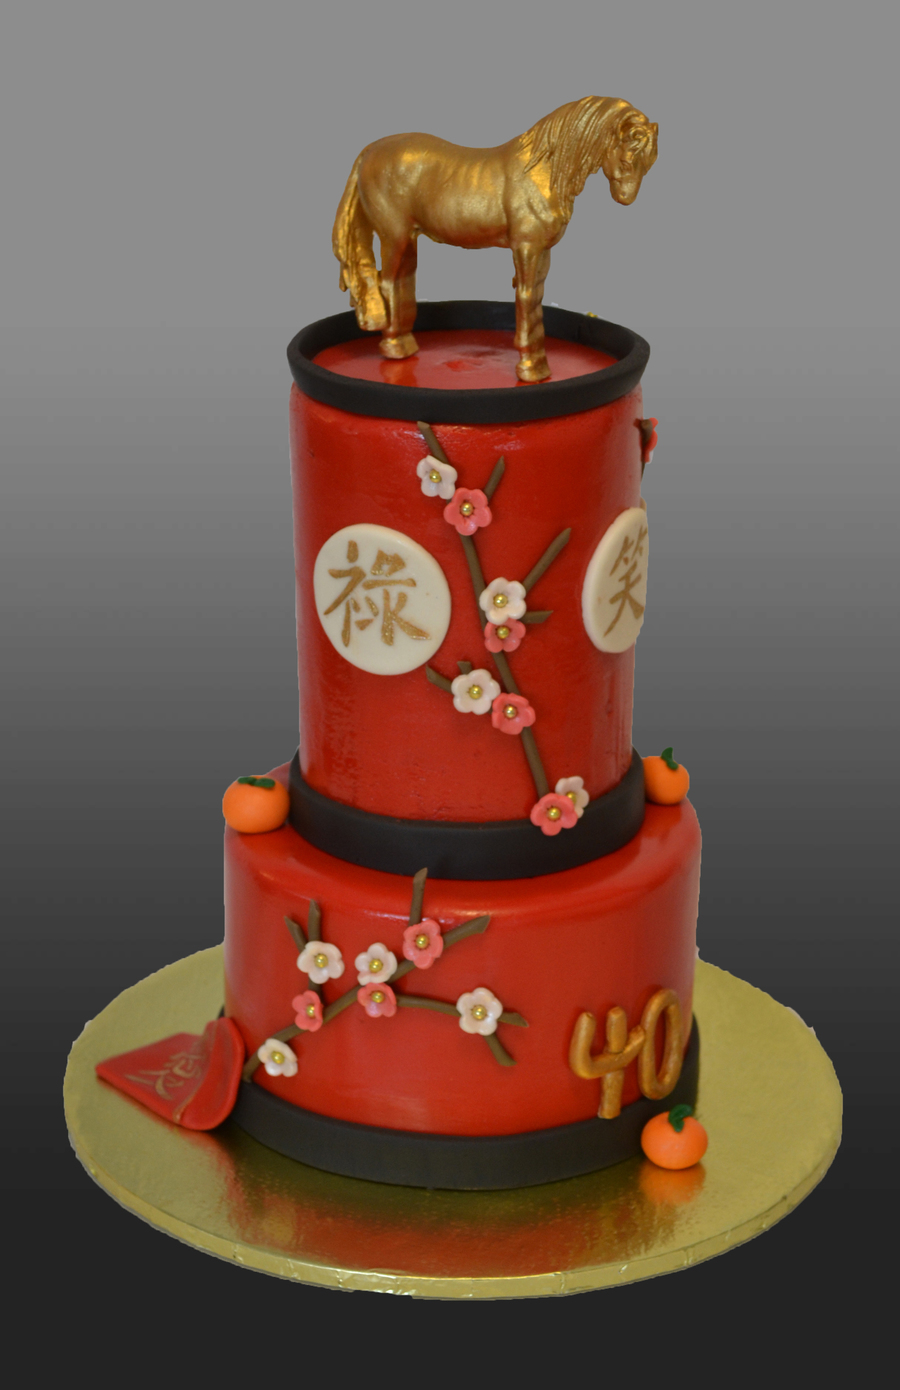 Chinese New Year Themed Cake  40Th Birthday Cake    CakeCentral com Favorites